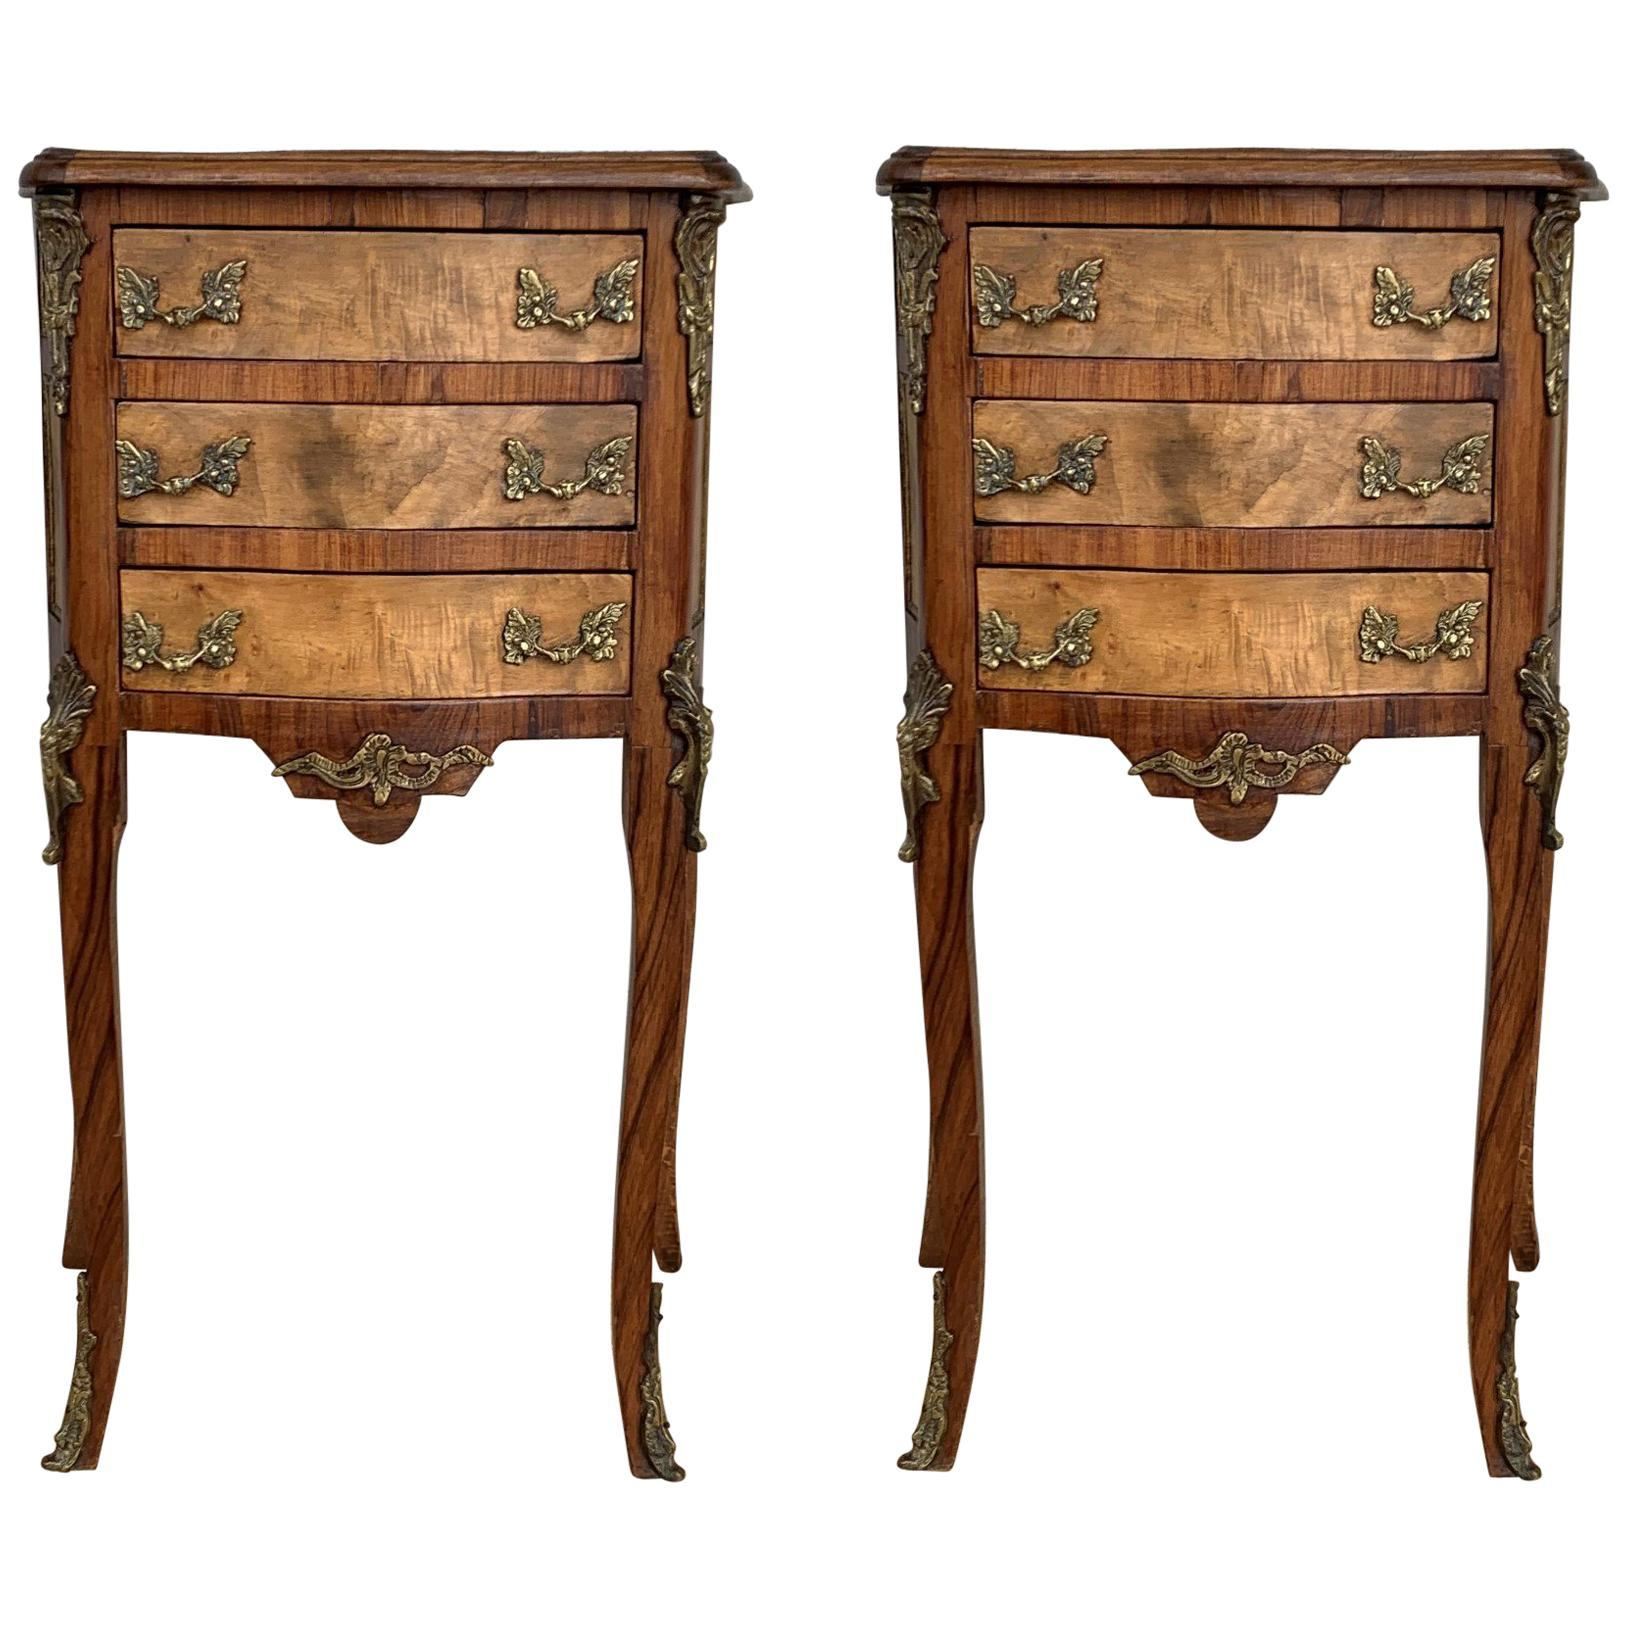 Pair Of Vintage French Louis Xv Style Wood Nightstands With Three Drawers For Sale At 1stdibs